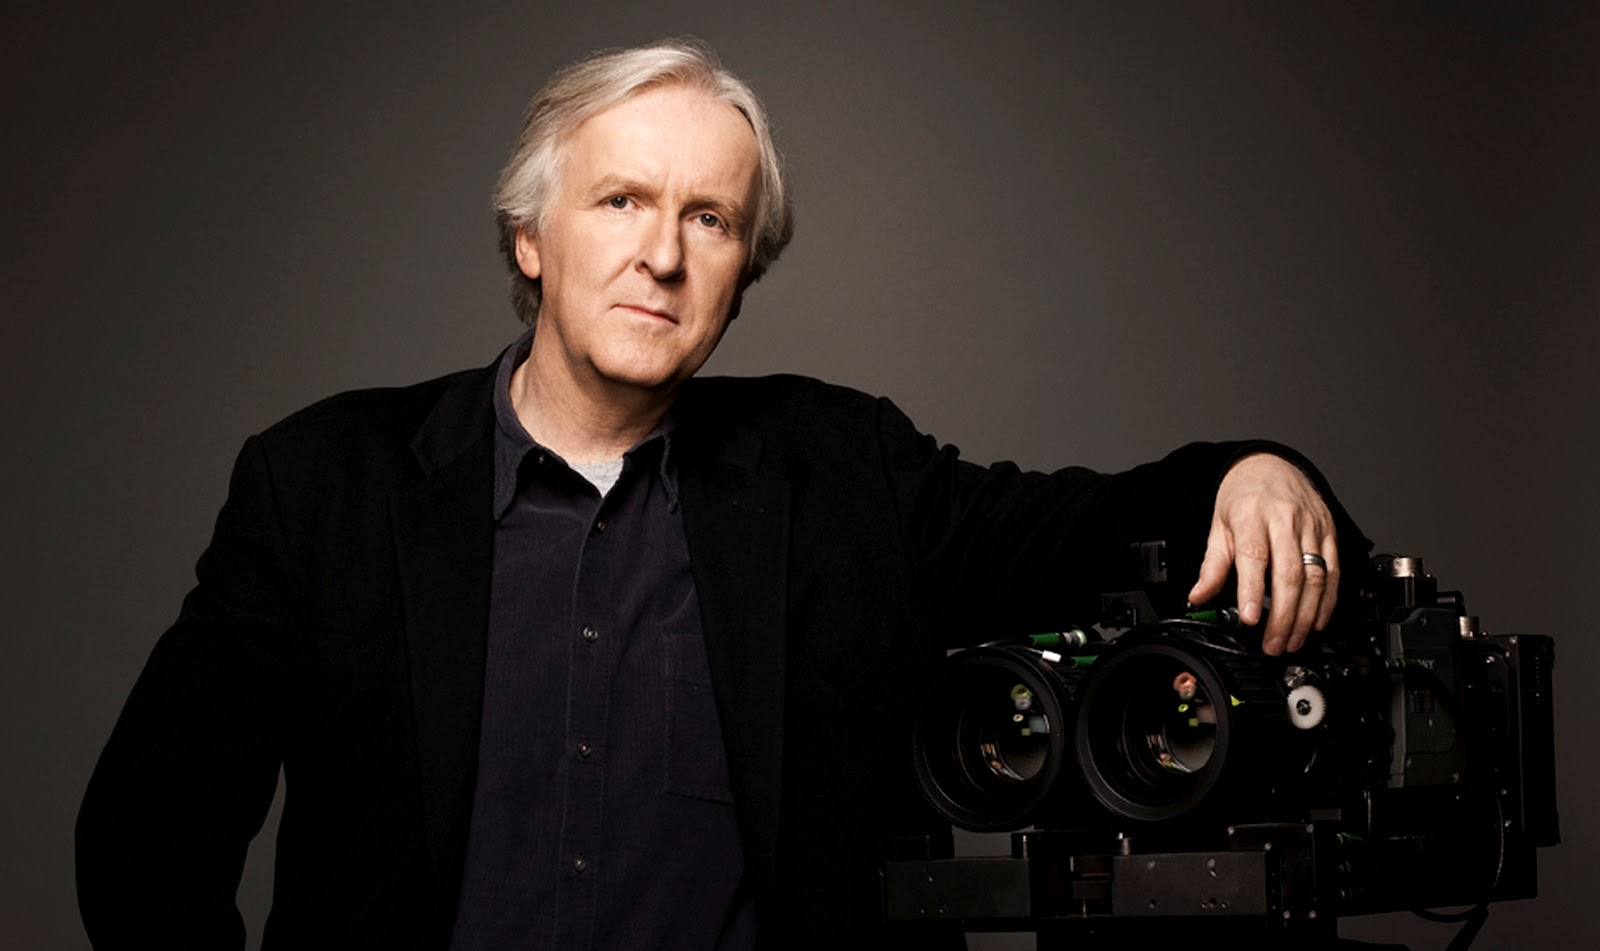 how tall is james cameron